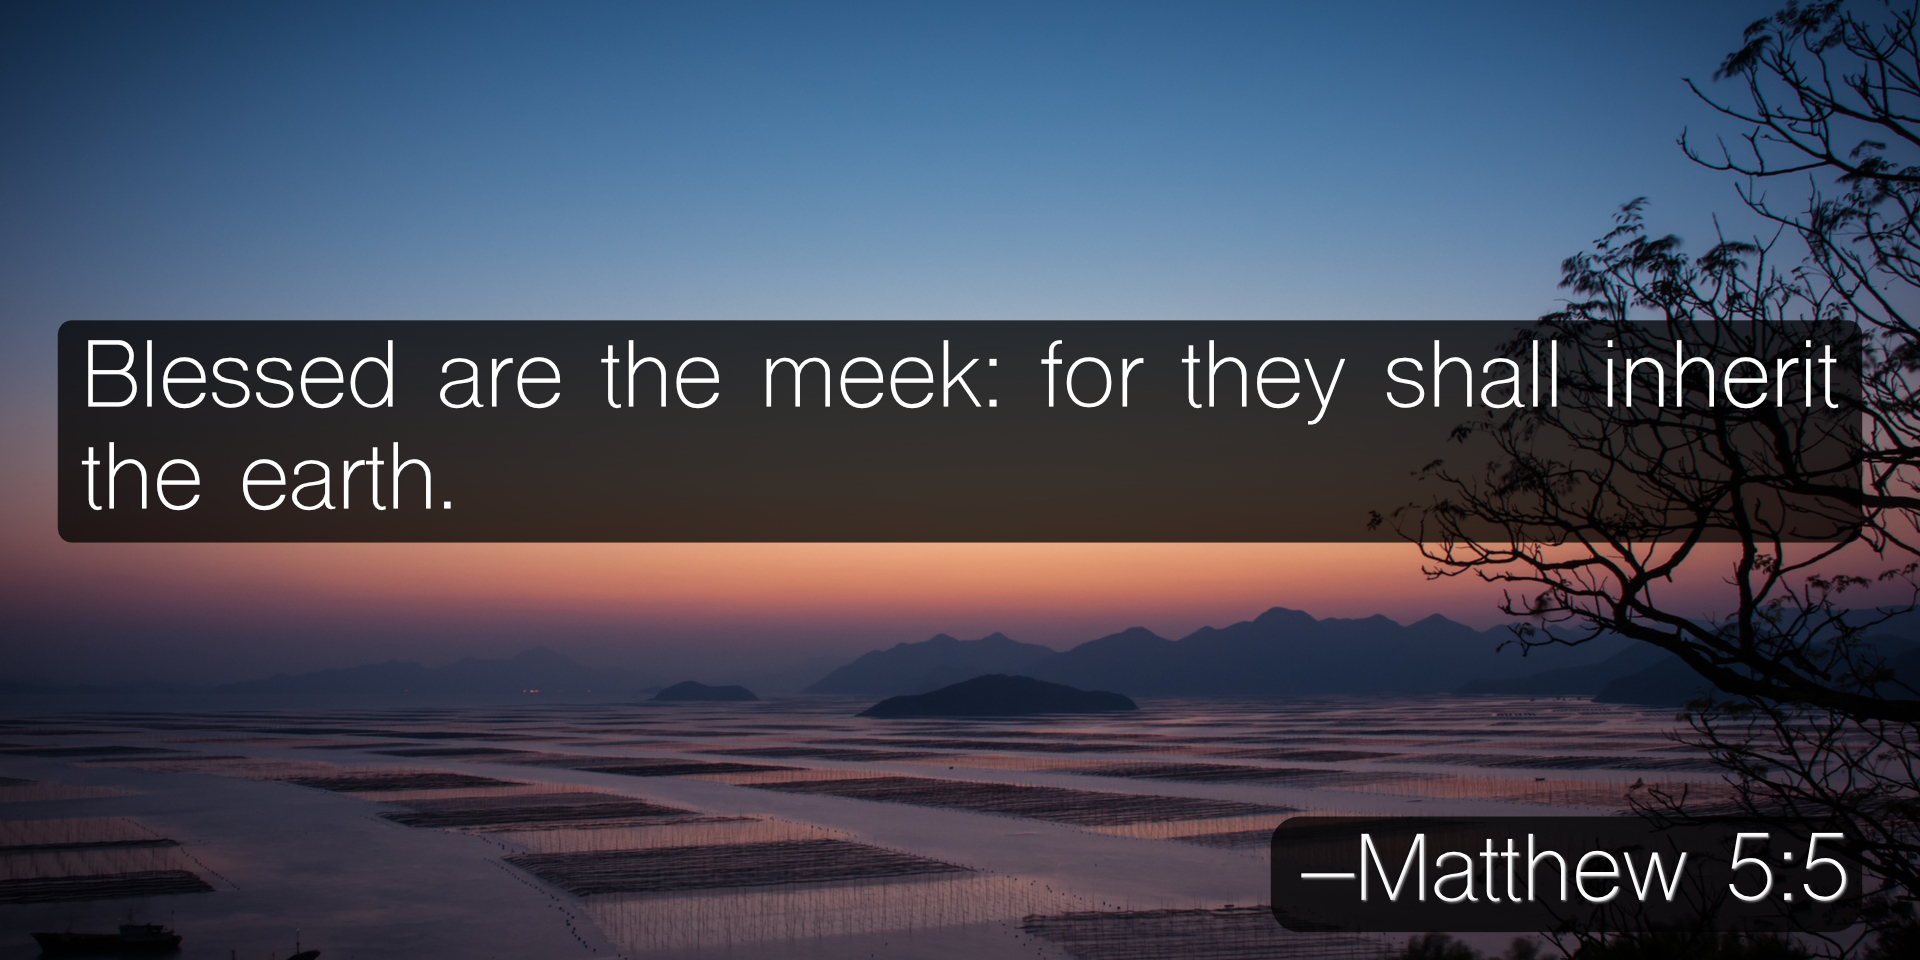 Blessed are the meek: for they shall inherit the earth. –Matthew 5:5